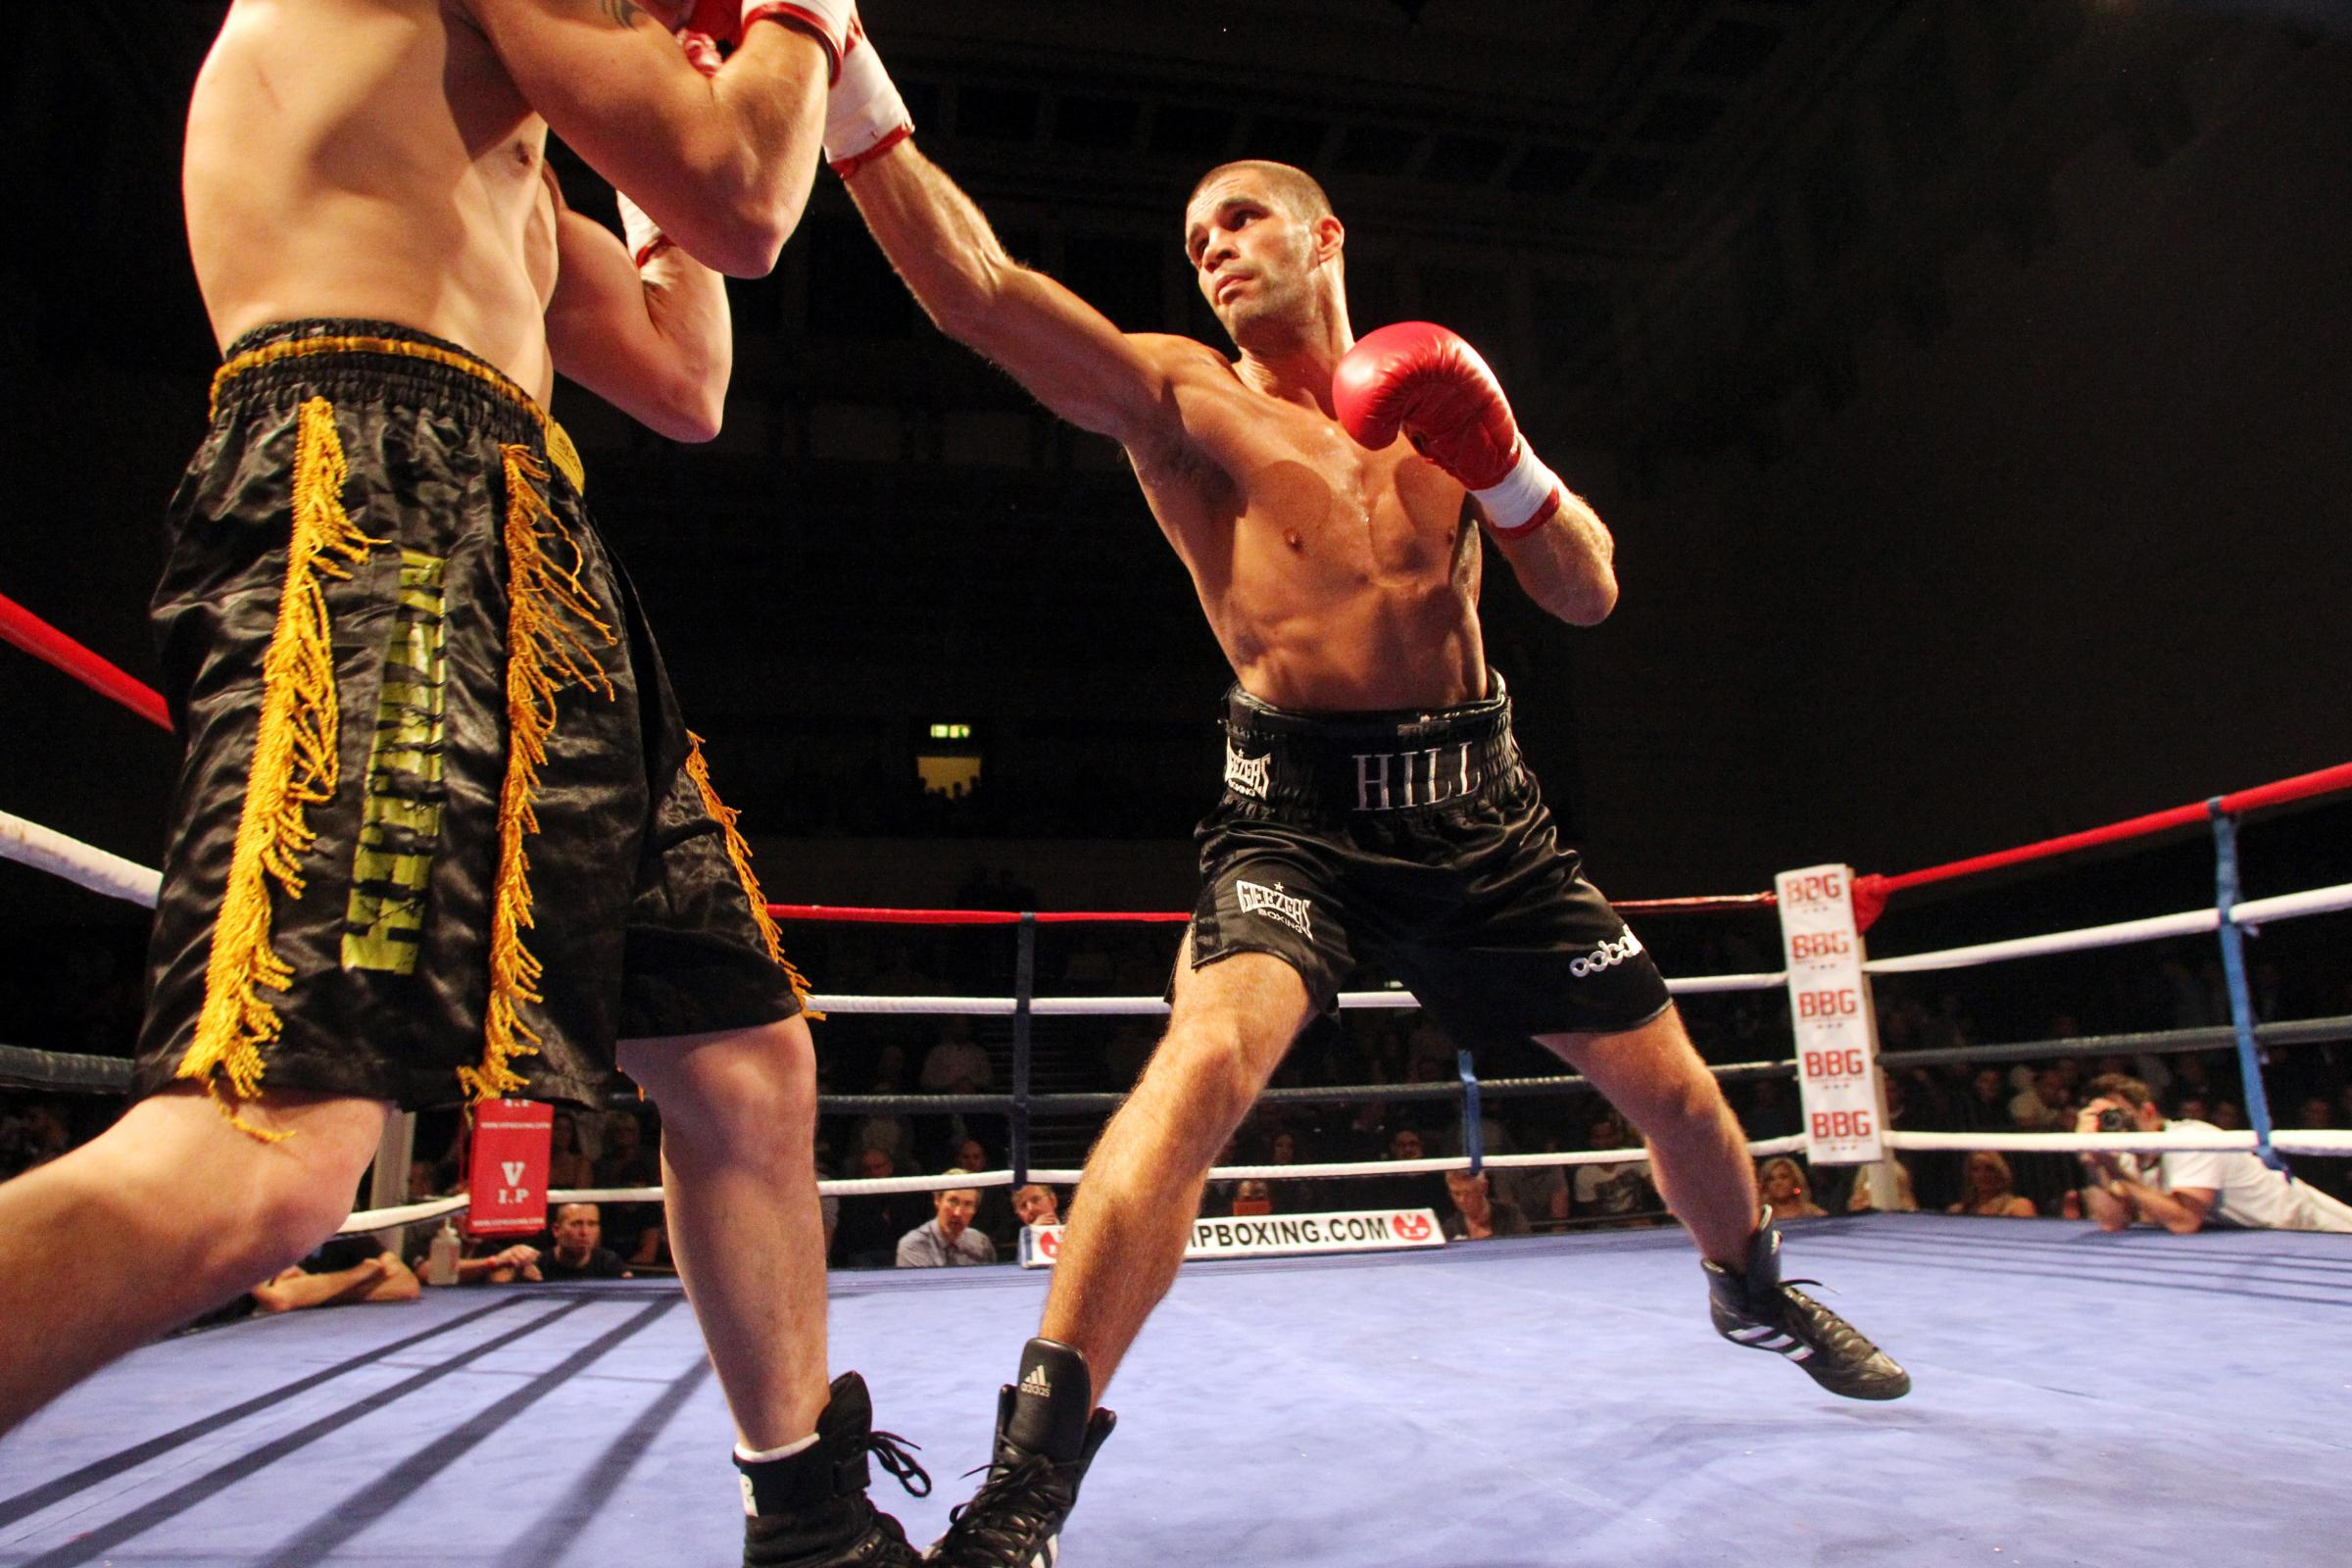 Setback for boxer Tony Hill's title hopes as Hosea Burton suffers injury